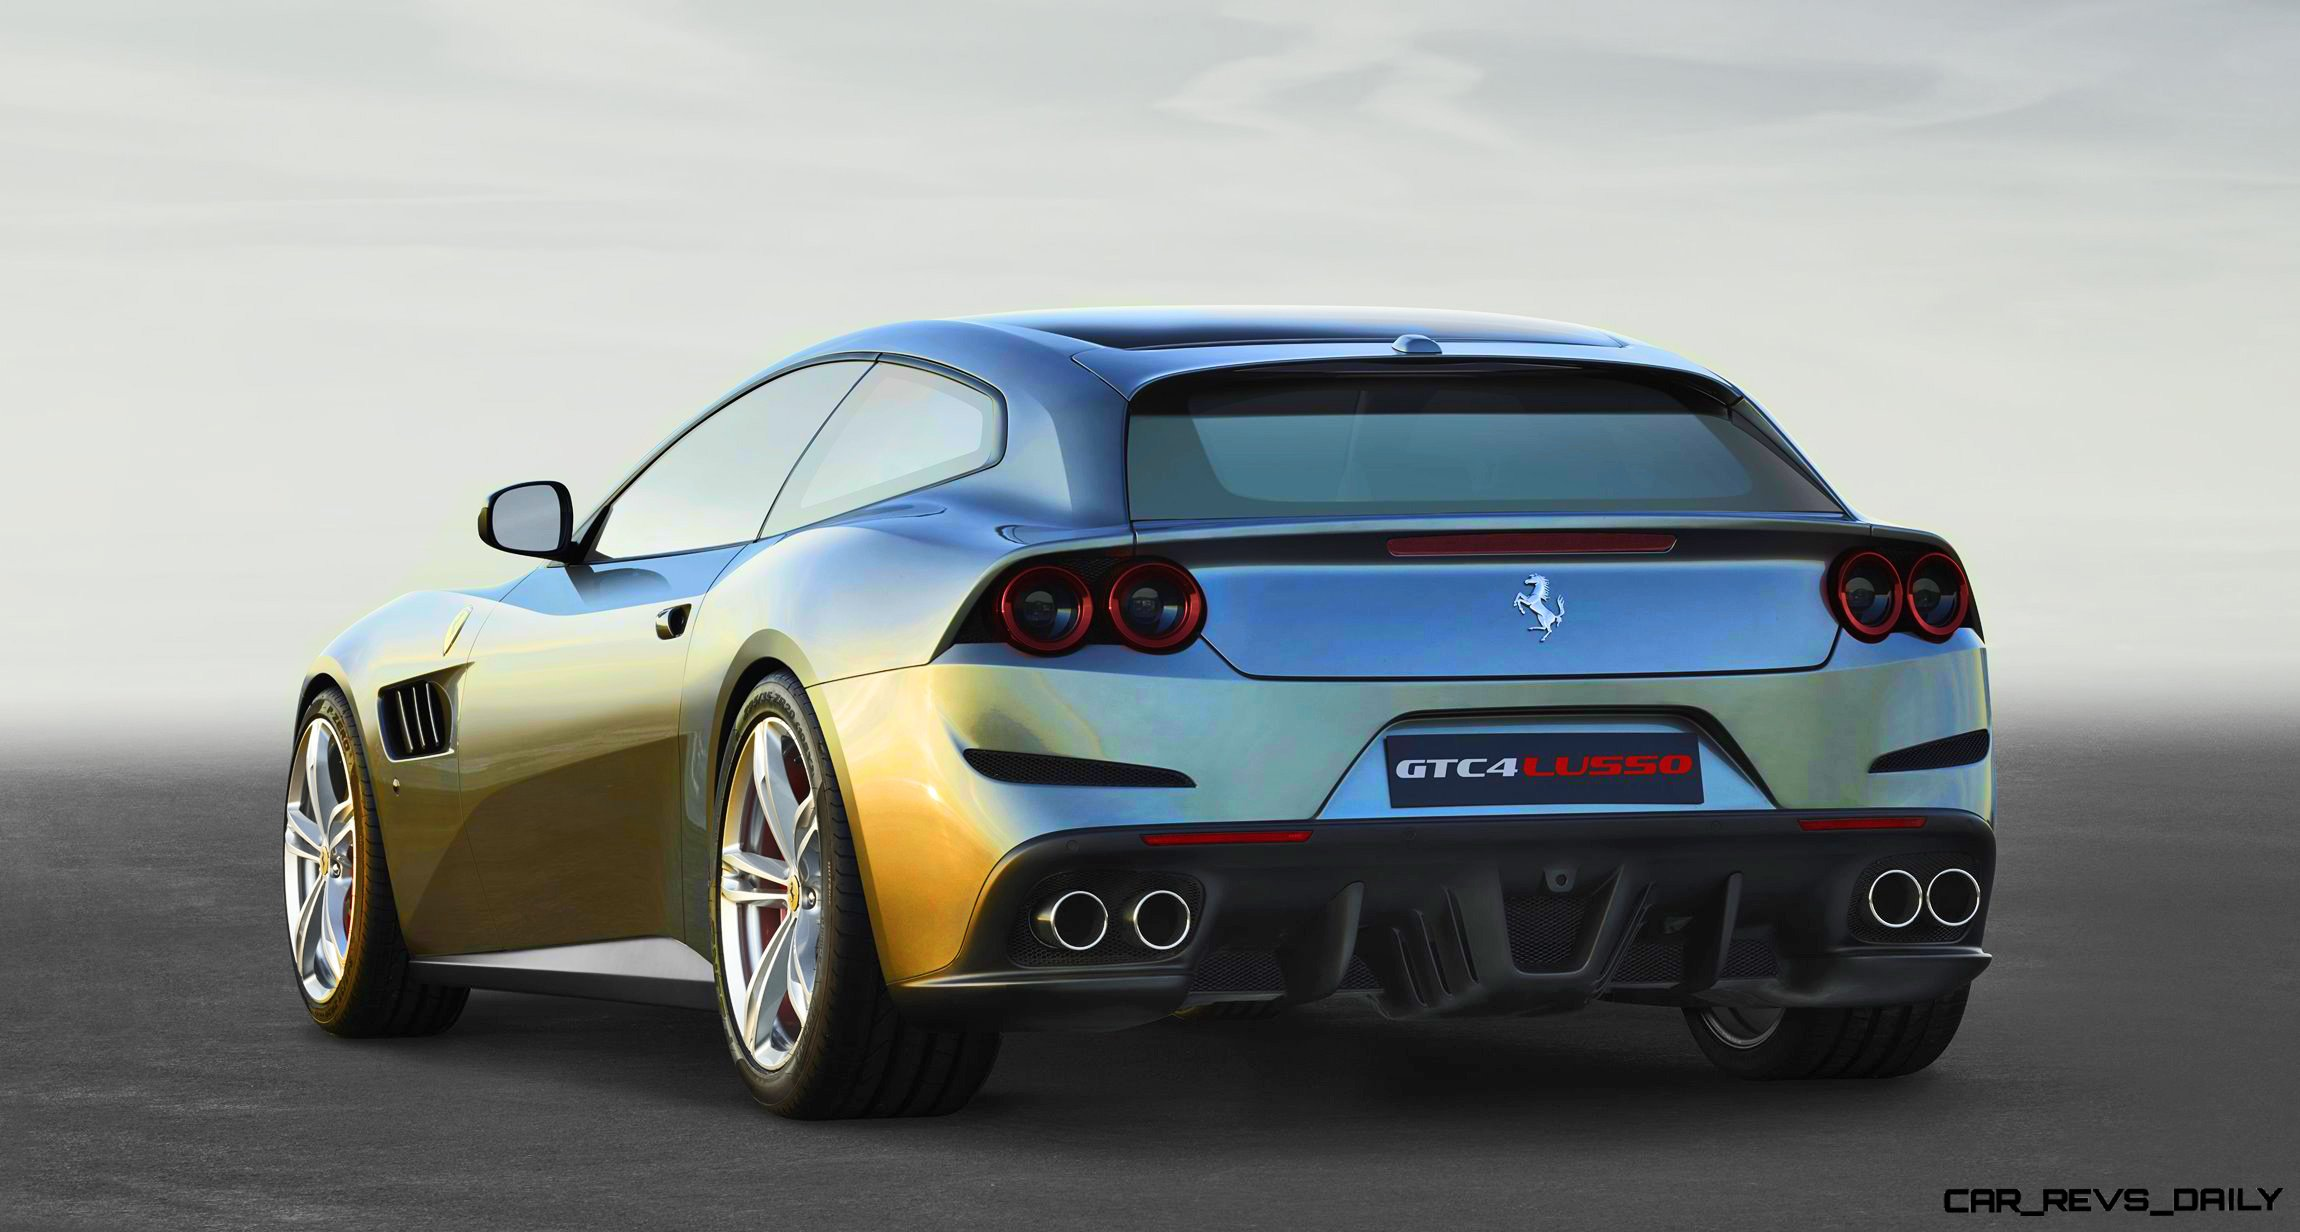 3.2s, 207MPH 2017 Ferrari GTC4 Lusso!  V12 4WD Now Adds 4WS In Full Redesign